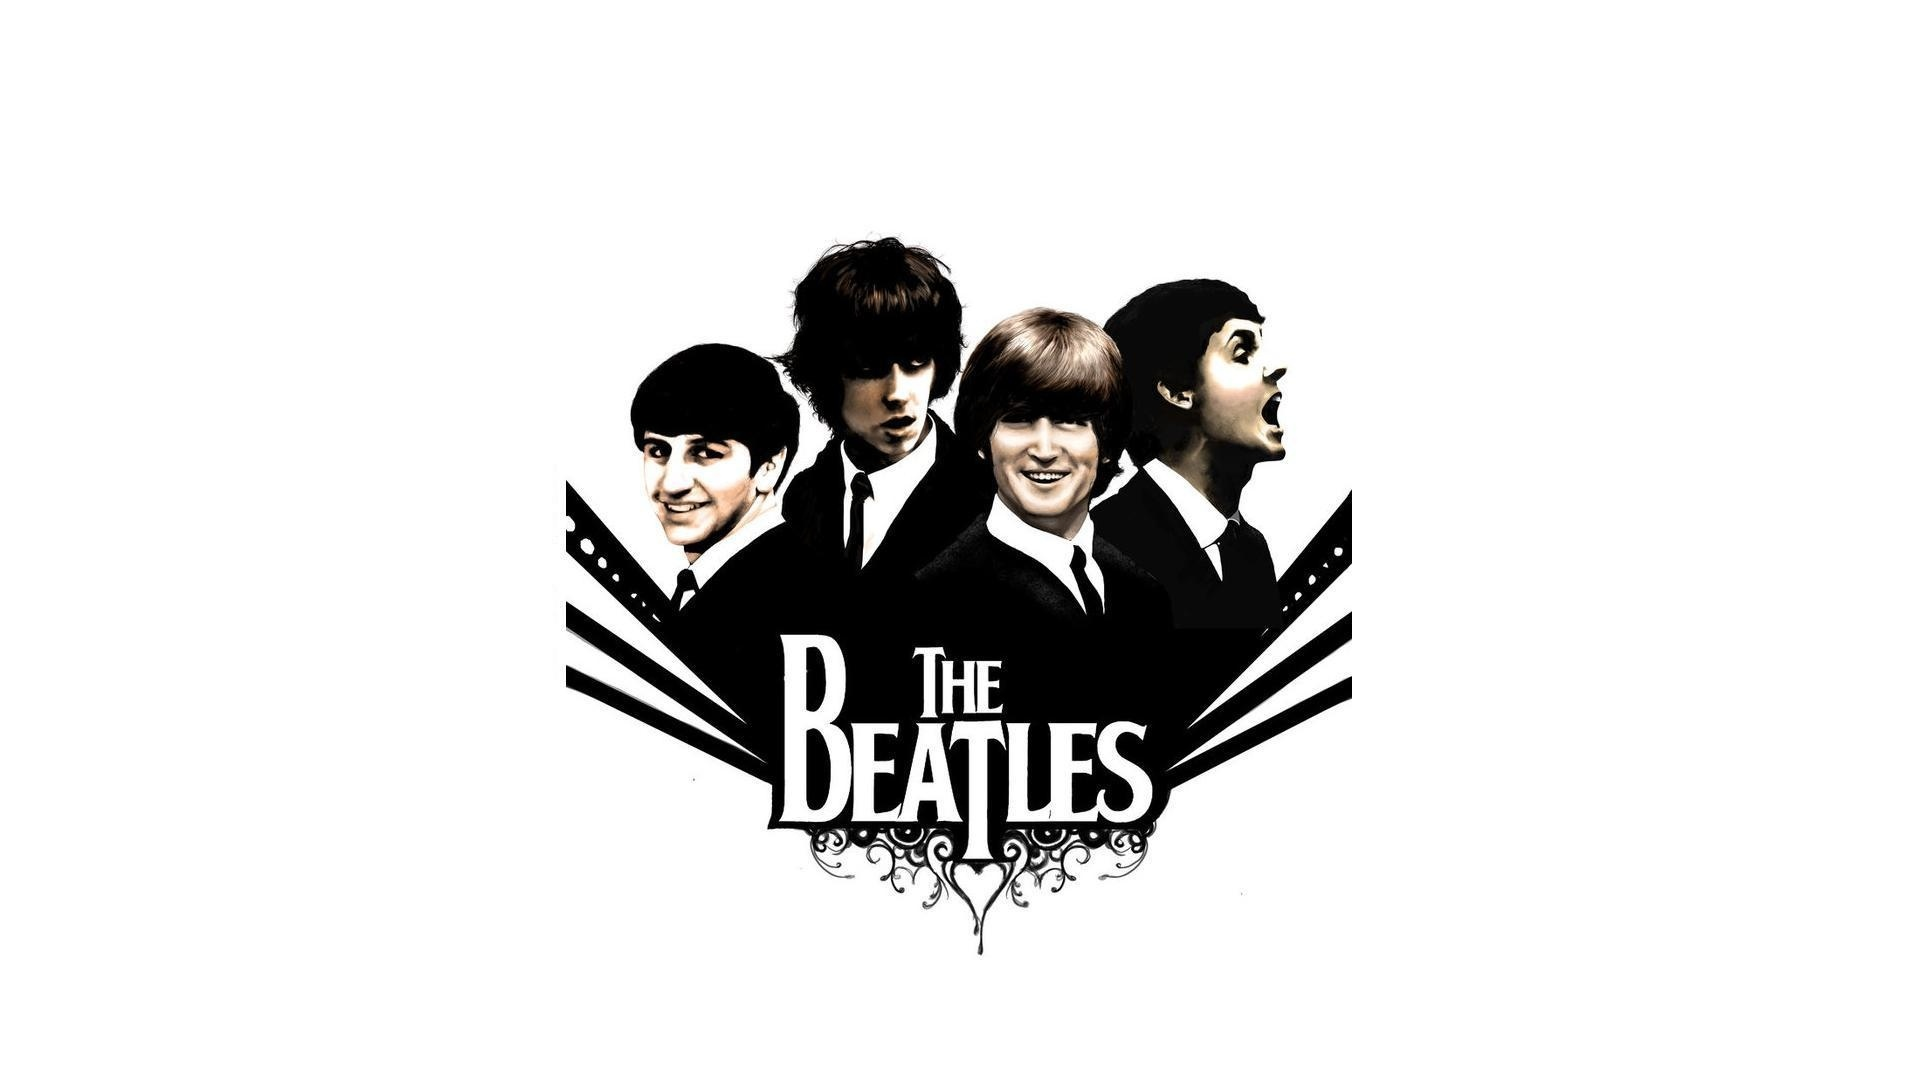 Легенда джон леннон битлз the beatles пол